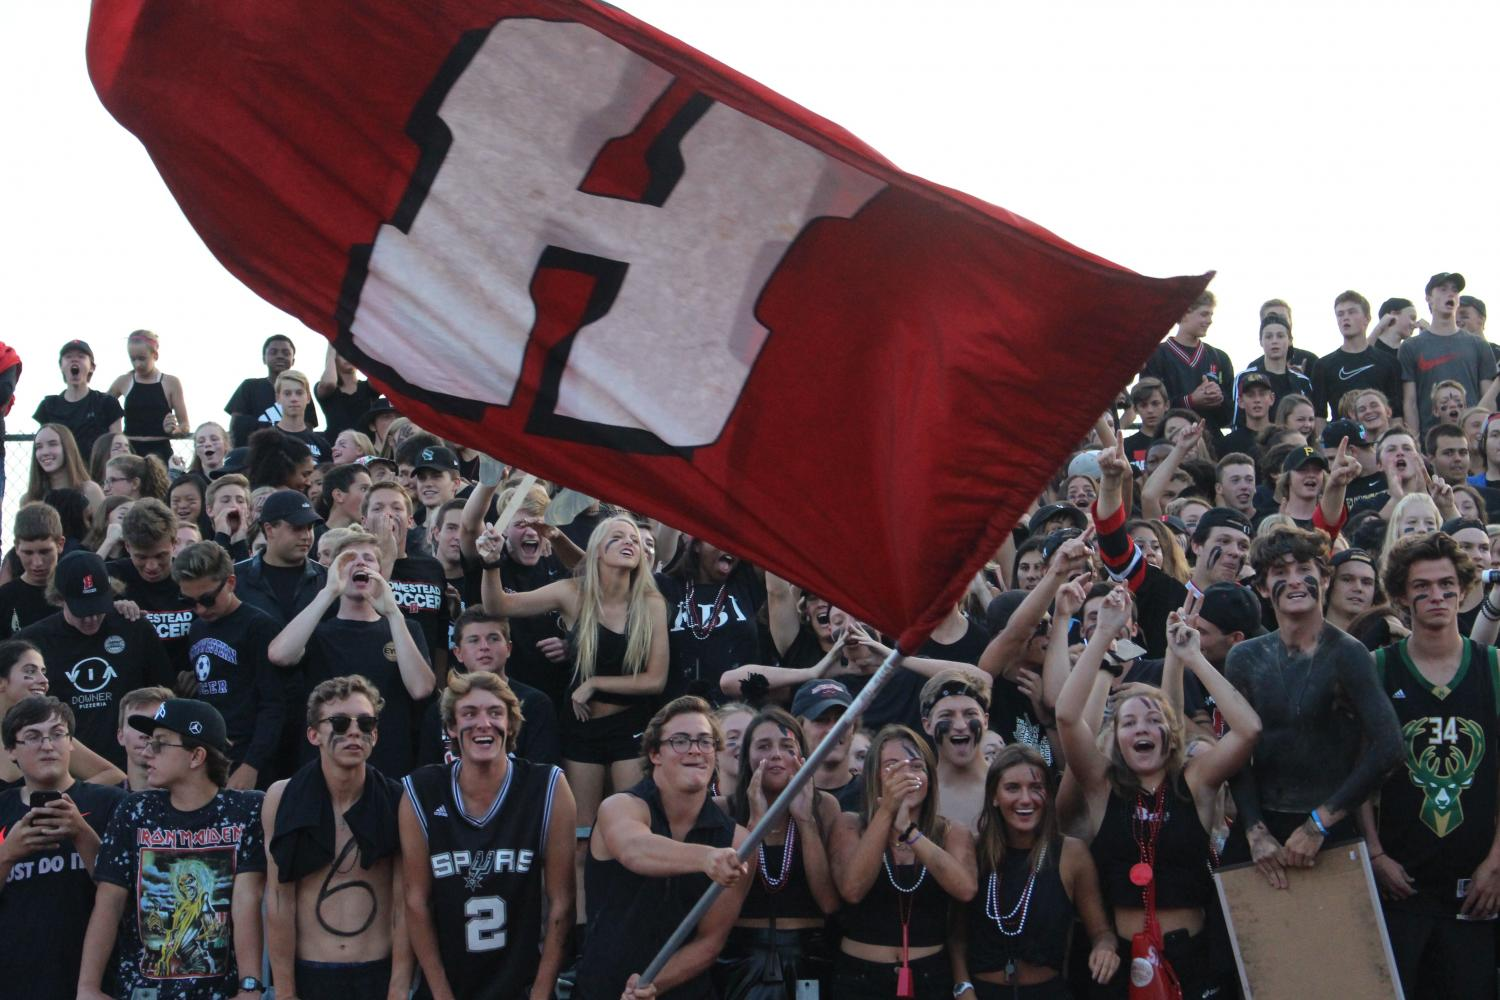 . The Homestead student section cheers for the football players while encompassing the black theme.